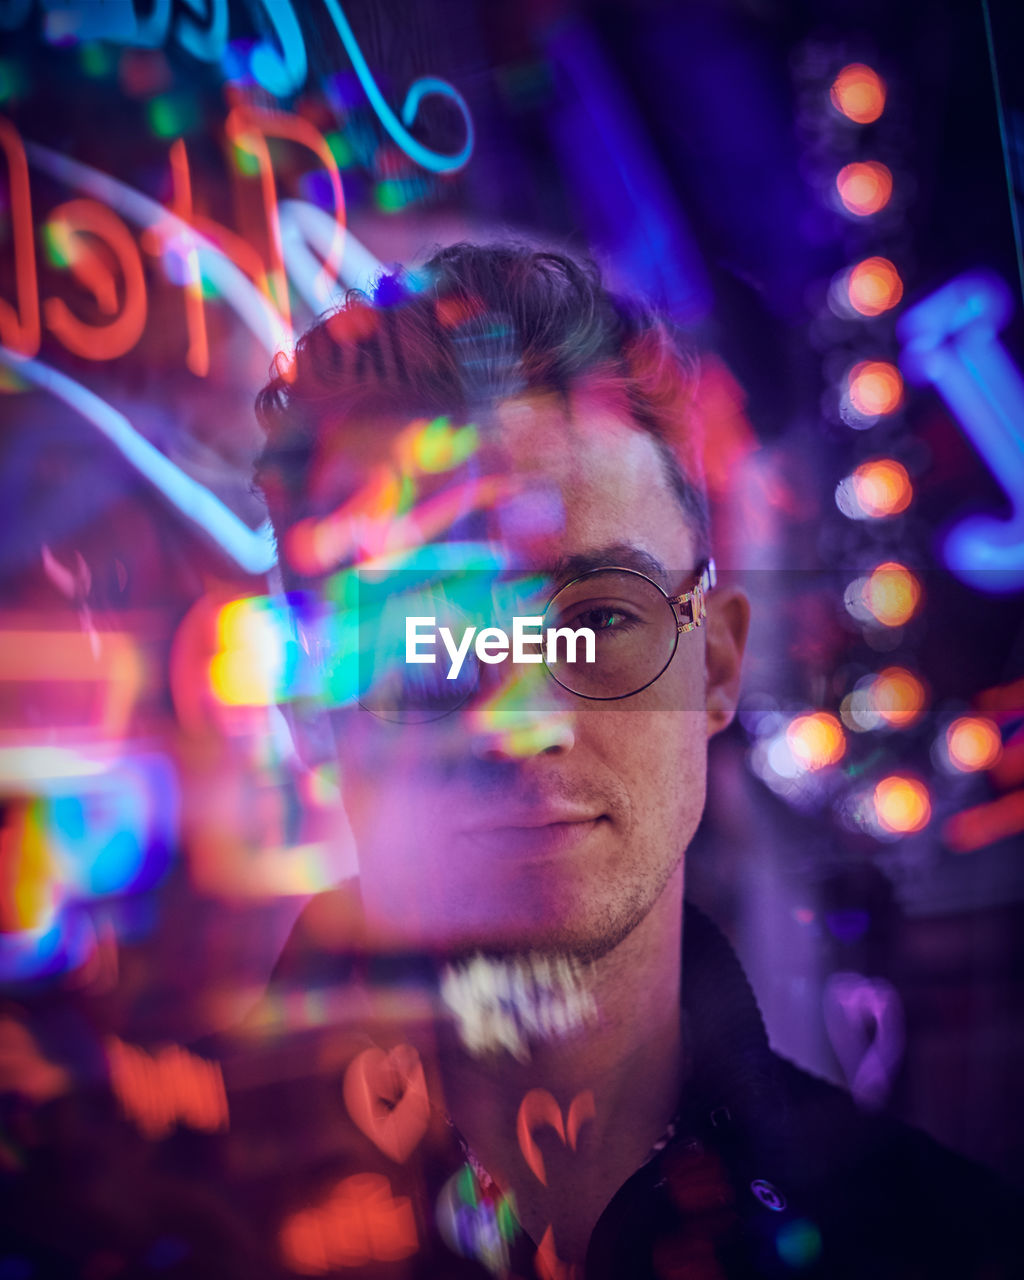 illuminated, headshot, portrait, glasses, one person, eyeglasses, real people, night, multi colored, glowing, leisure activity, front view, light - natural phenomenon, lifestyles, adult, technology, mid adult, focus on foreground, men, nightlife, light